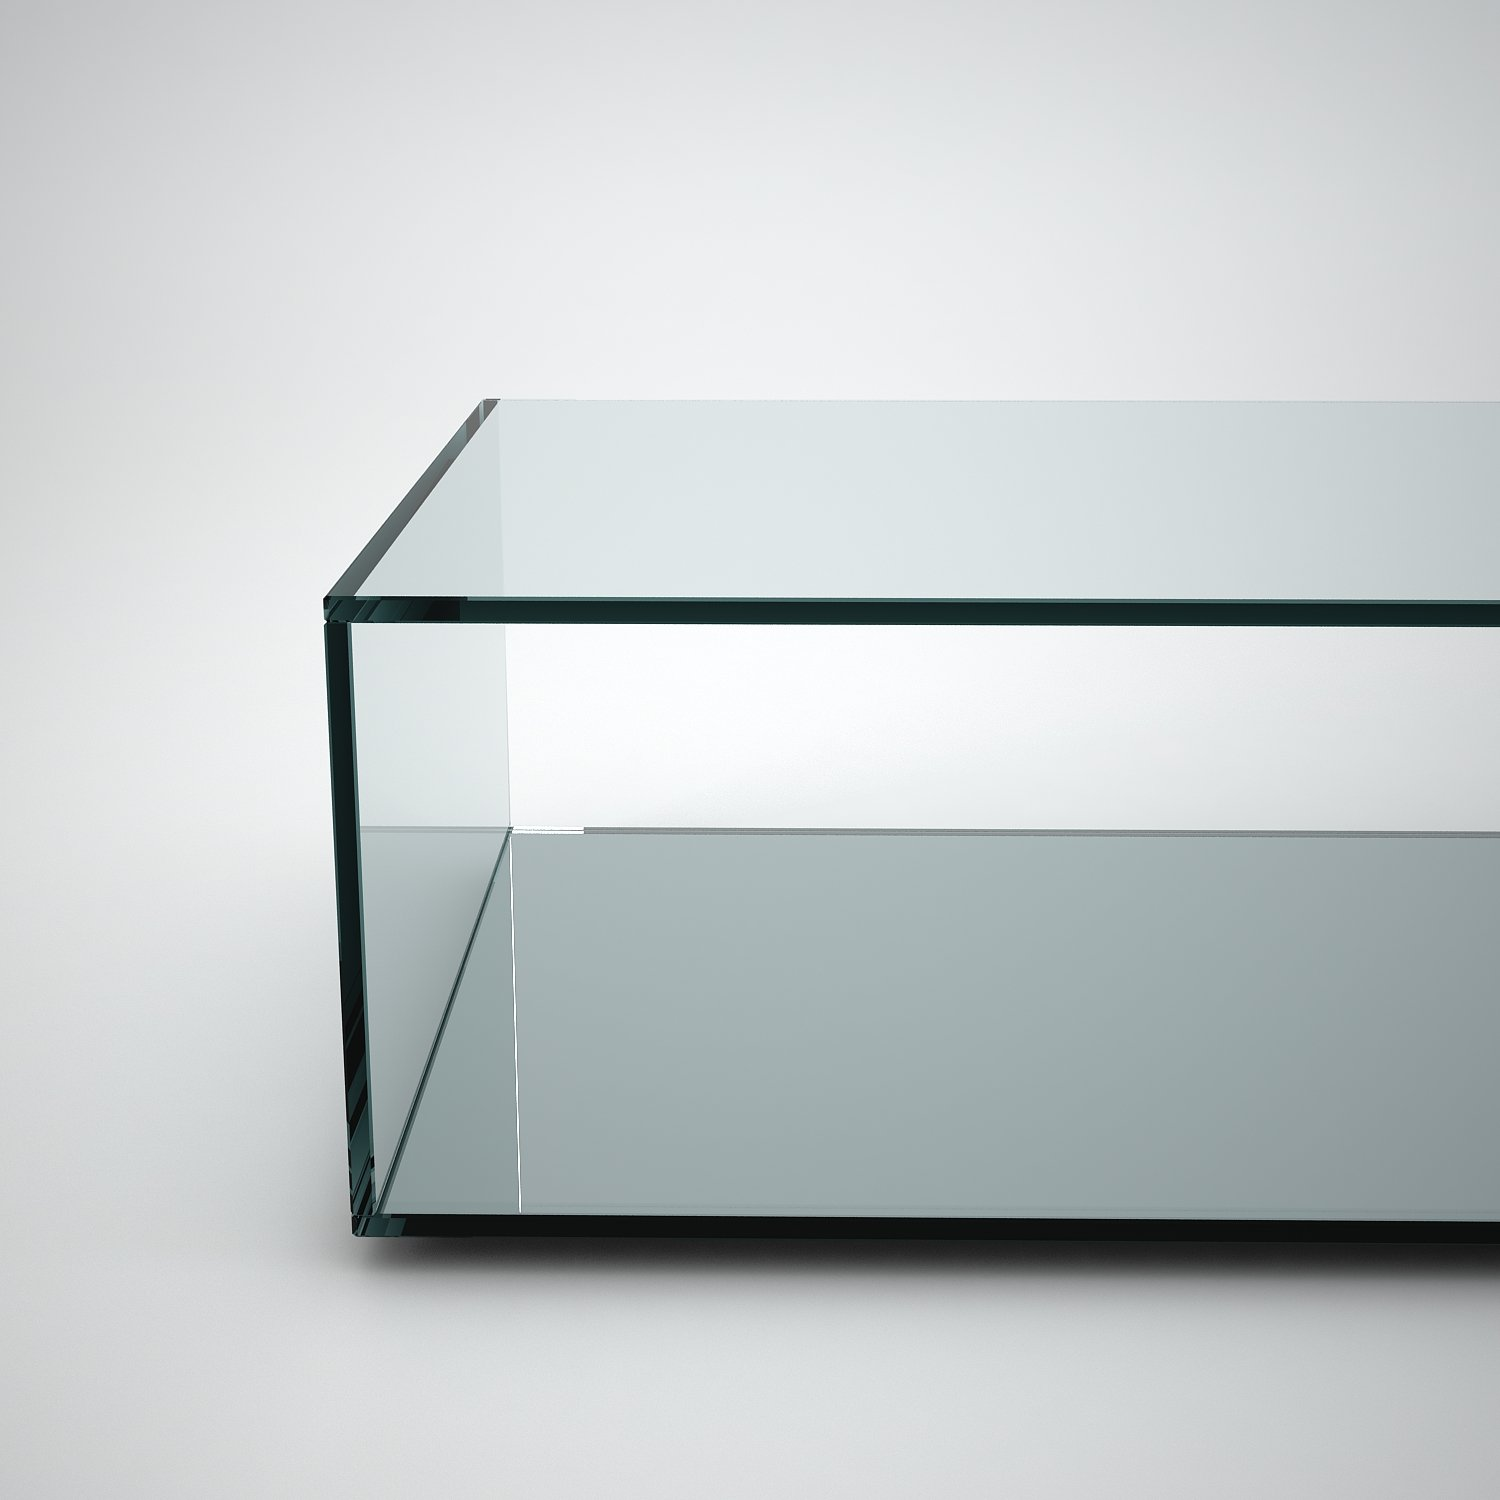 Quebec Rectangular Glass Coffee Table With Mirror Base Klarity Glass Furniture [ 1500 x 1500 Pixel ]